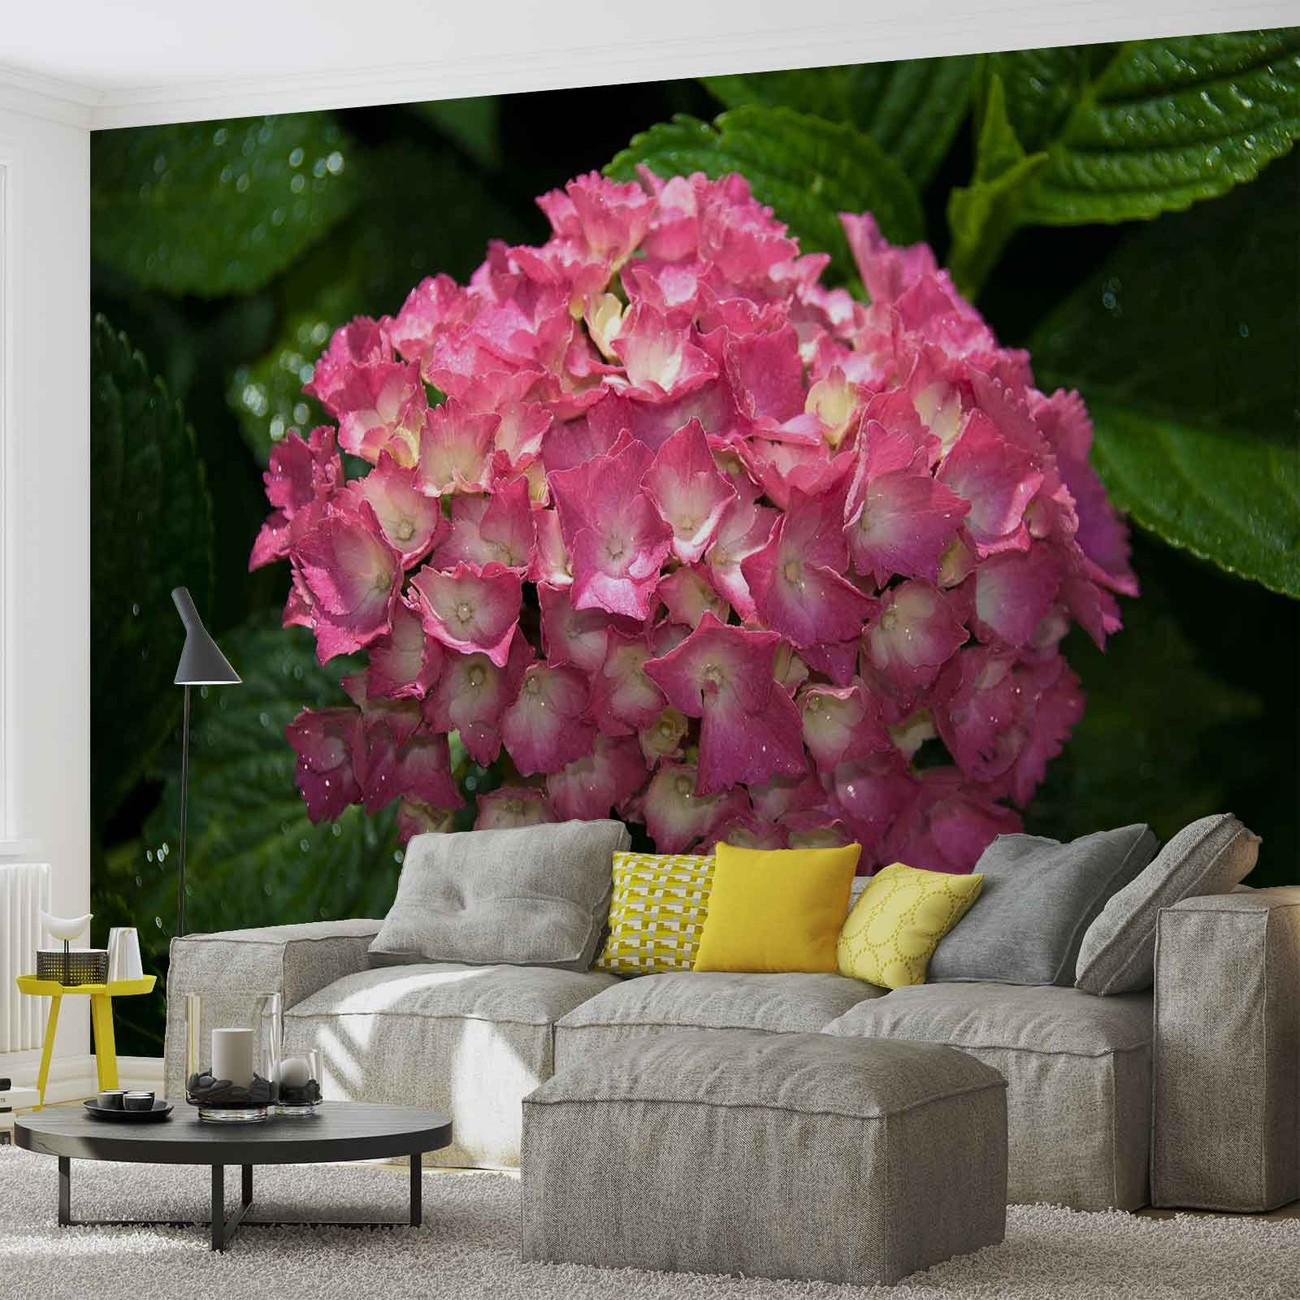 Flowers hydrangea pink wall paper mural buy at europosters Mural of flowers